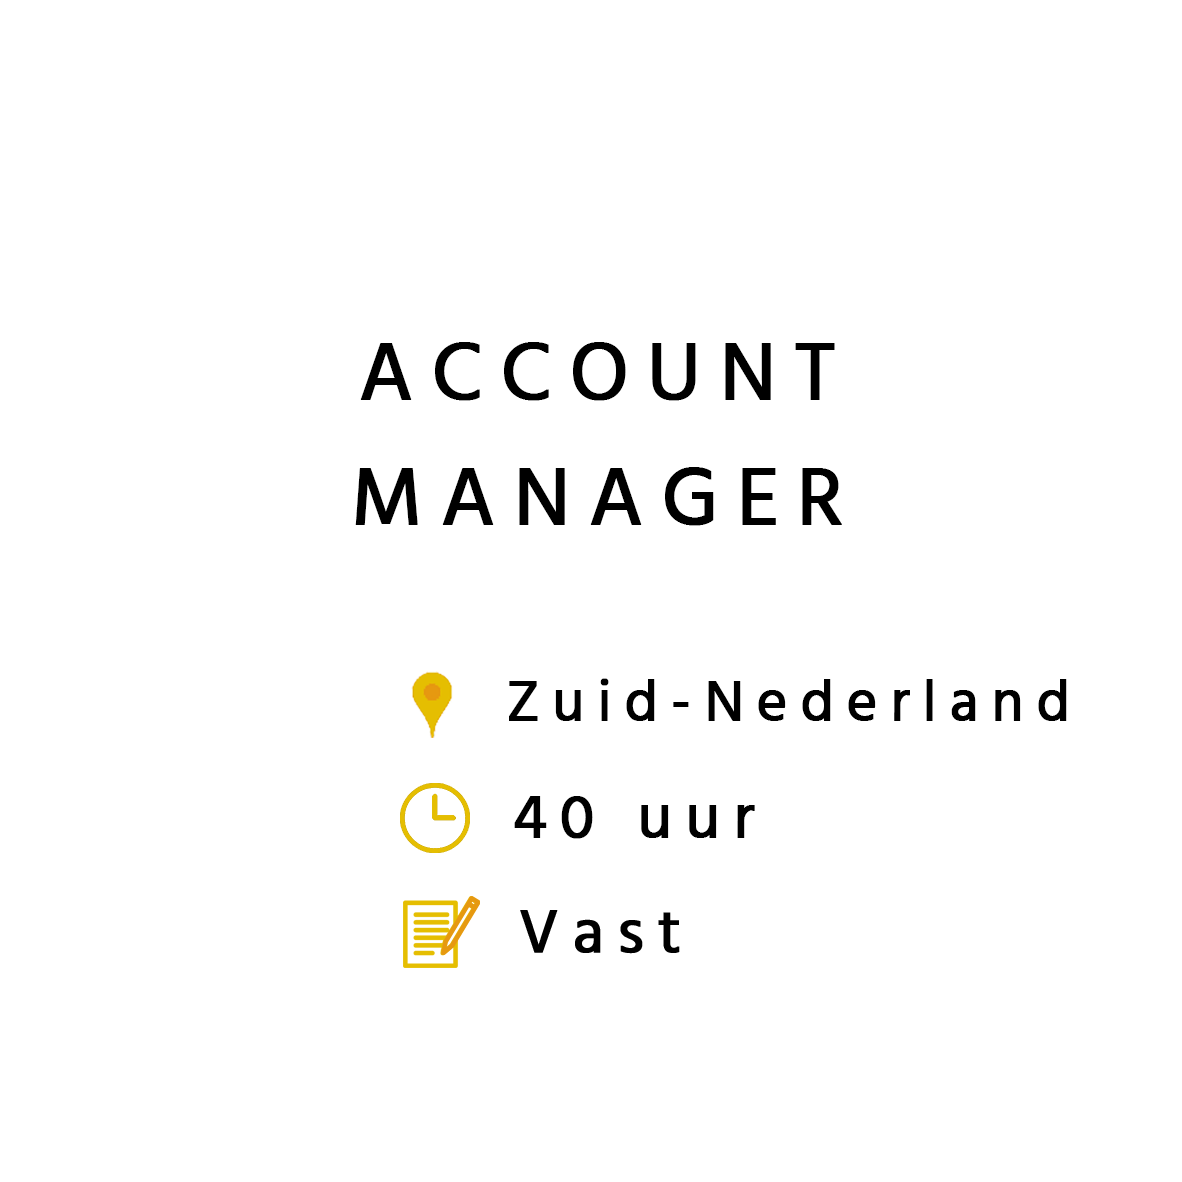 Accountmanager zuid